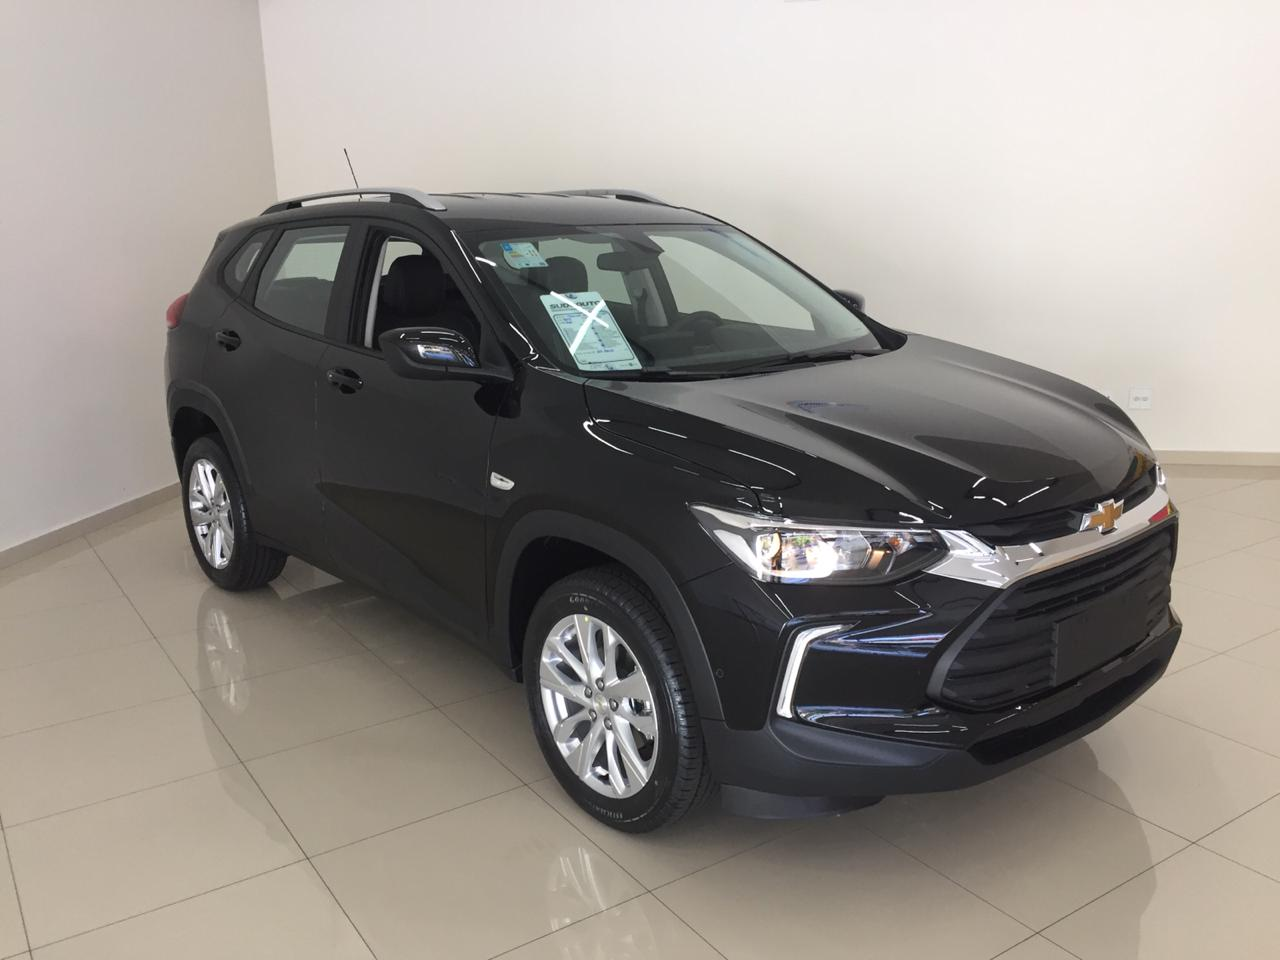 CHEVROLET TRACKER LTZ 1.2 TURBO 2021